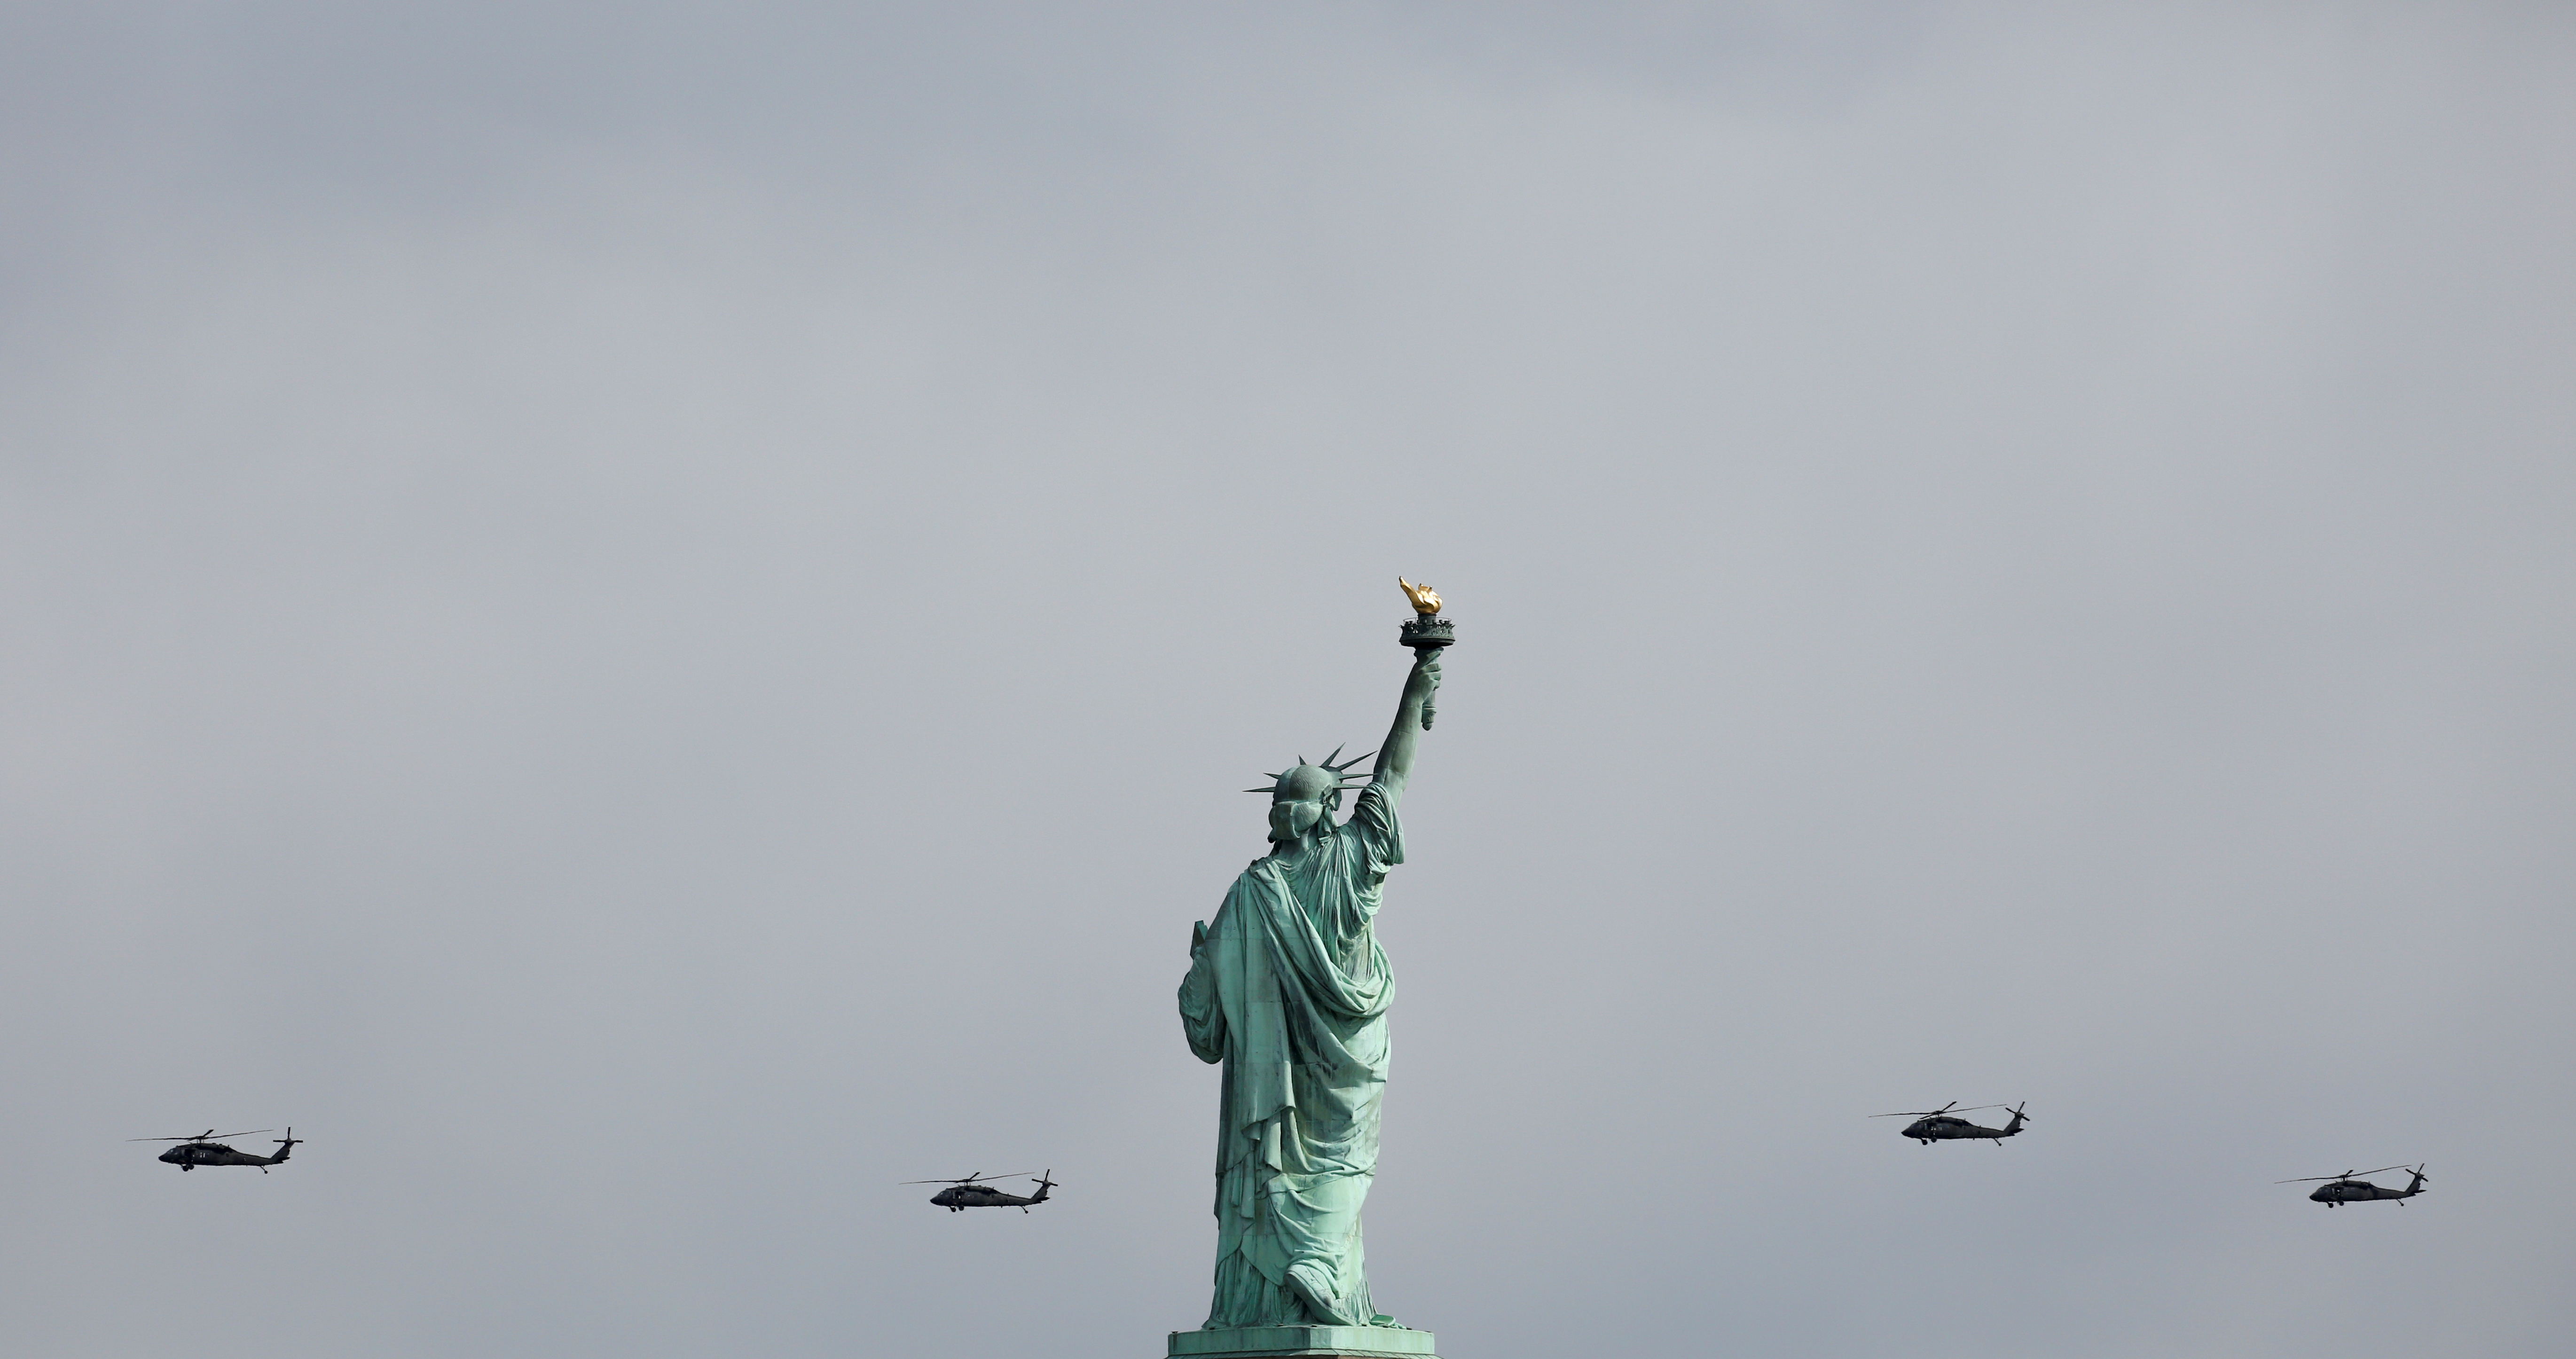 Military helicopters, conducting a military training exercise, fly past the Statue of Liberty in this photograph taken from Liberty State Park in Jersey City, New Jersey, U.S., March 11, 2017. REUTERS/Ashlee Espinal